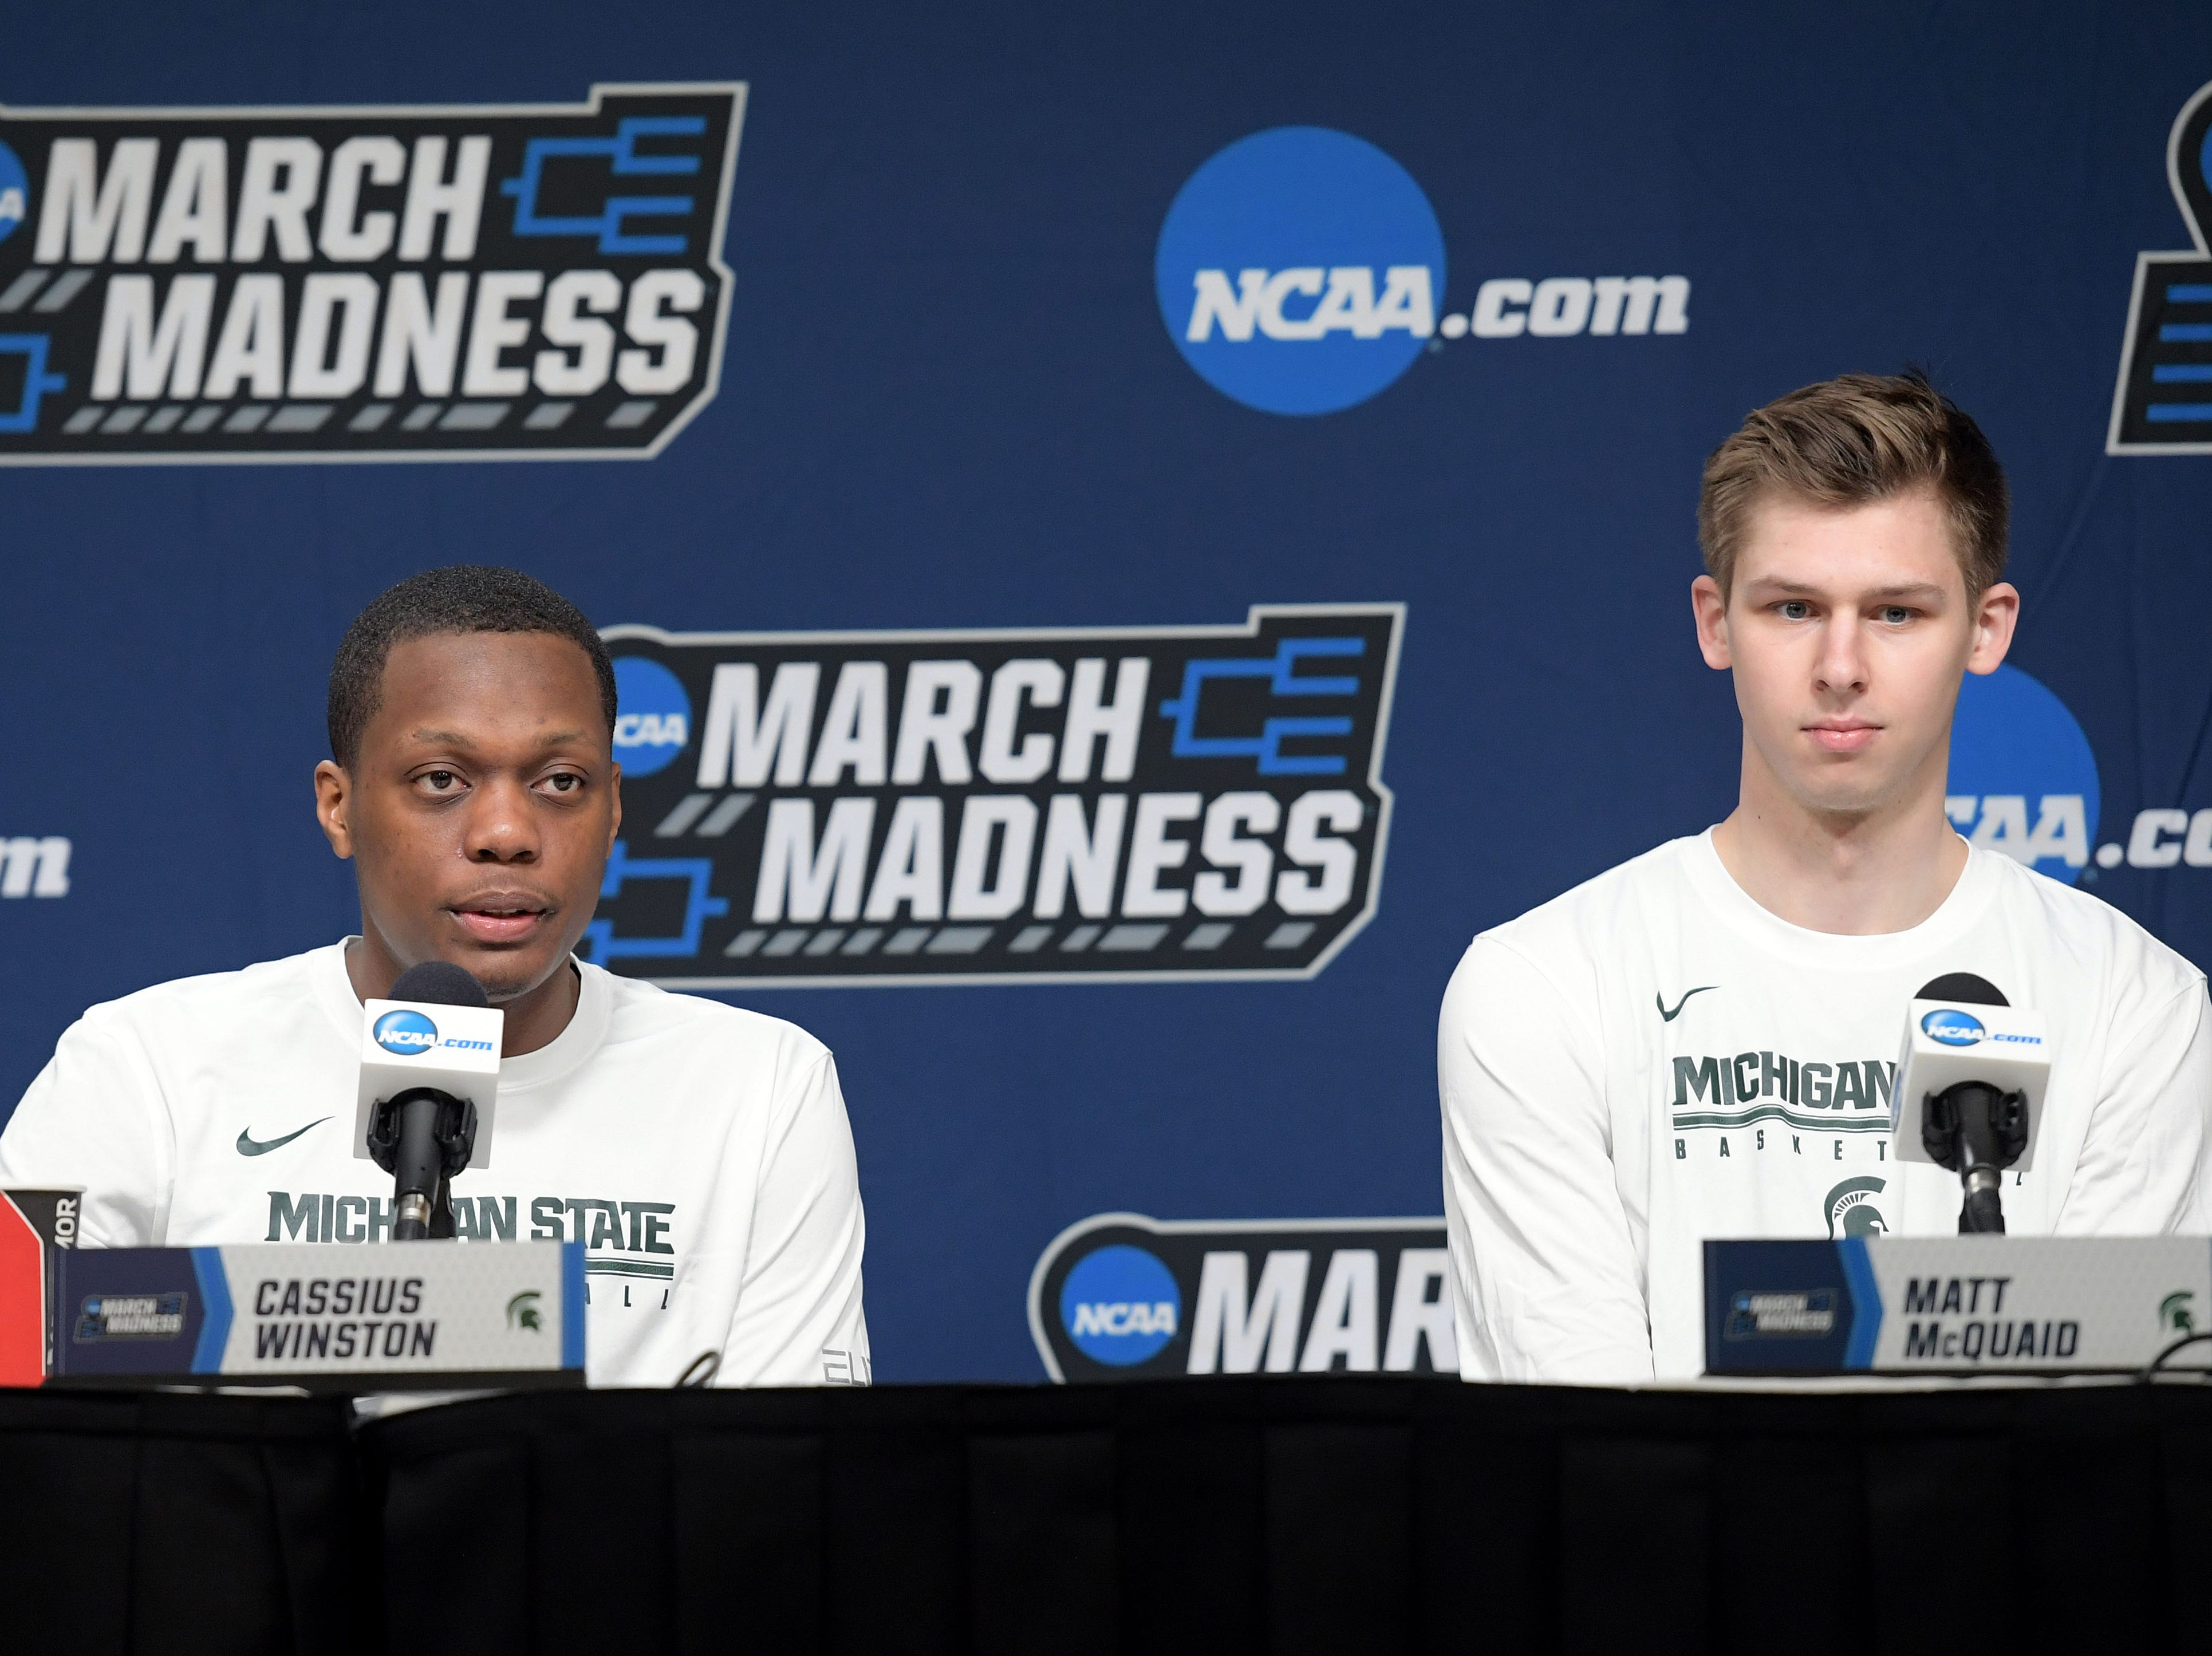 Mar 20, 2019; Des Moines, IA, USA; Michigan State Spartans guard Cassius Winston (5) and guard Matt McQuaid (20) speak in a press conference during practice before the first round of the 2019 NCAA Tournament at Wells Fargo Arena. Mandatory Credit: Steven Branscombe-USA TODAY Sports